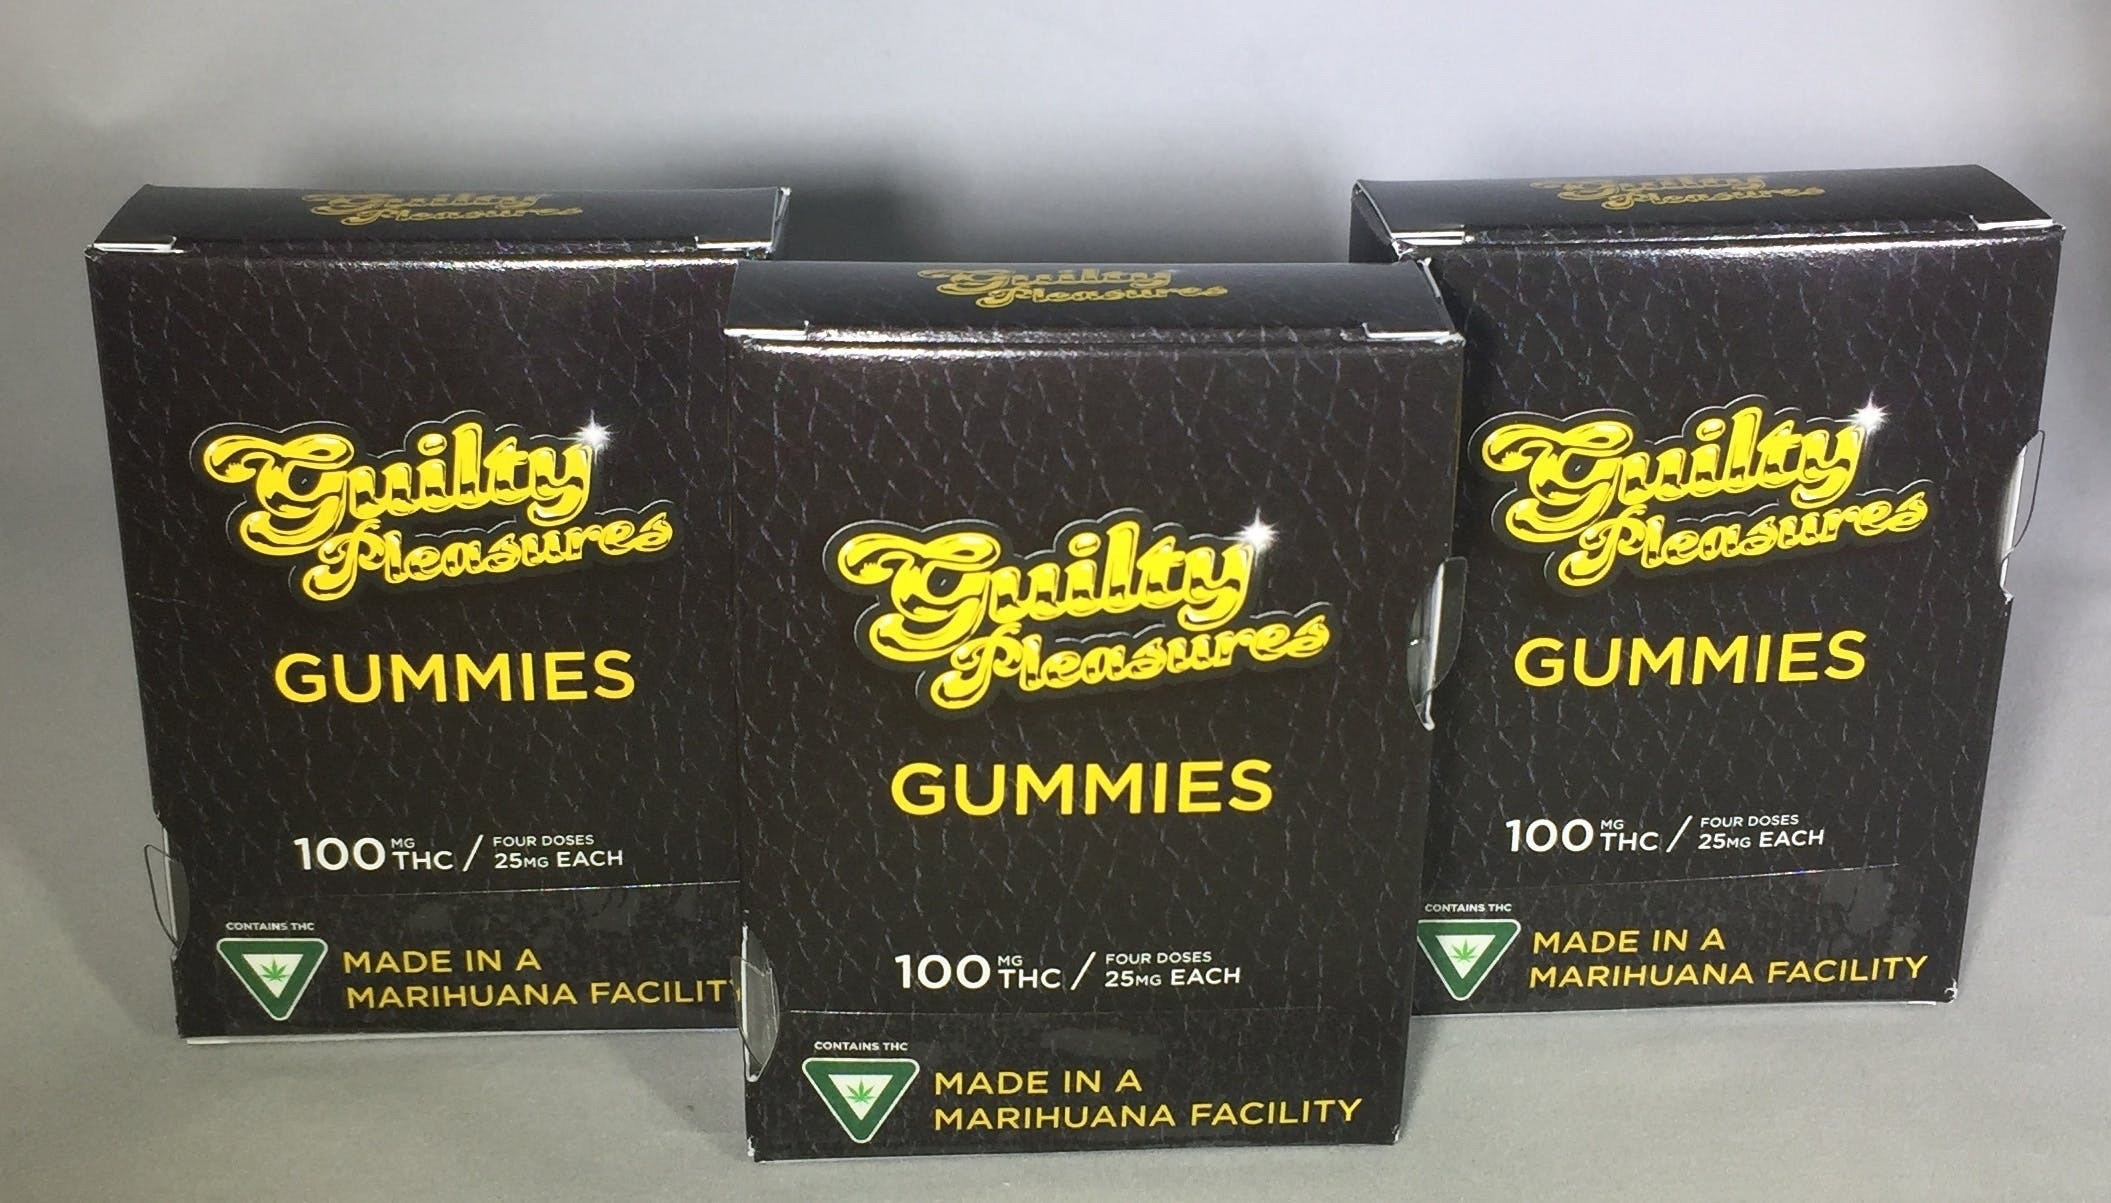 edible-guilty-pleasure-100mg-gummies